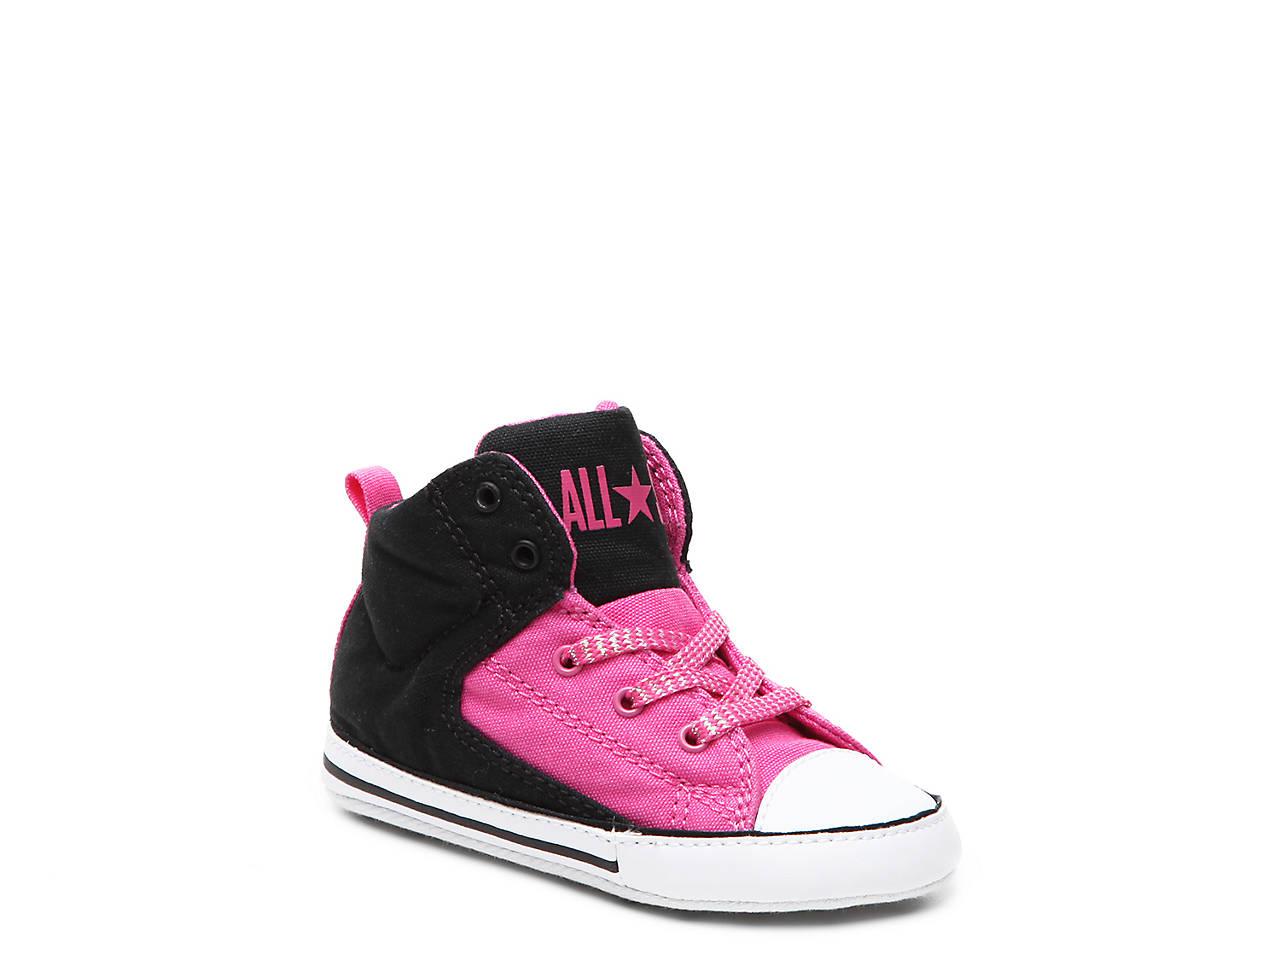 5385f3575dcd58 Converse Chuck Taylor All Star First Star High Street Infant Crib ...